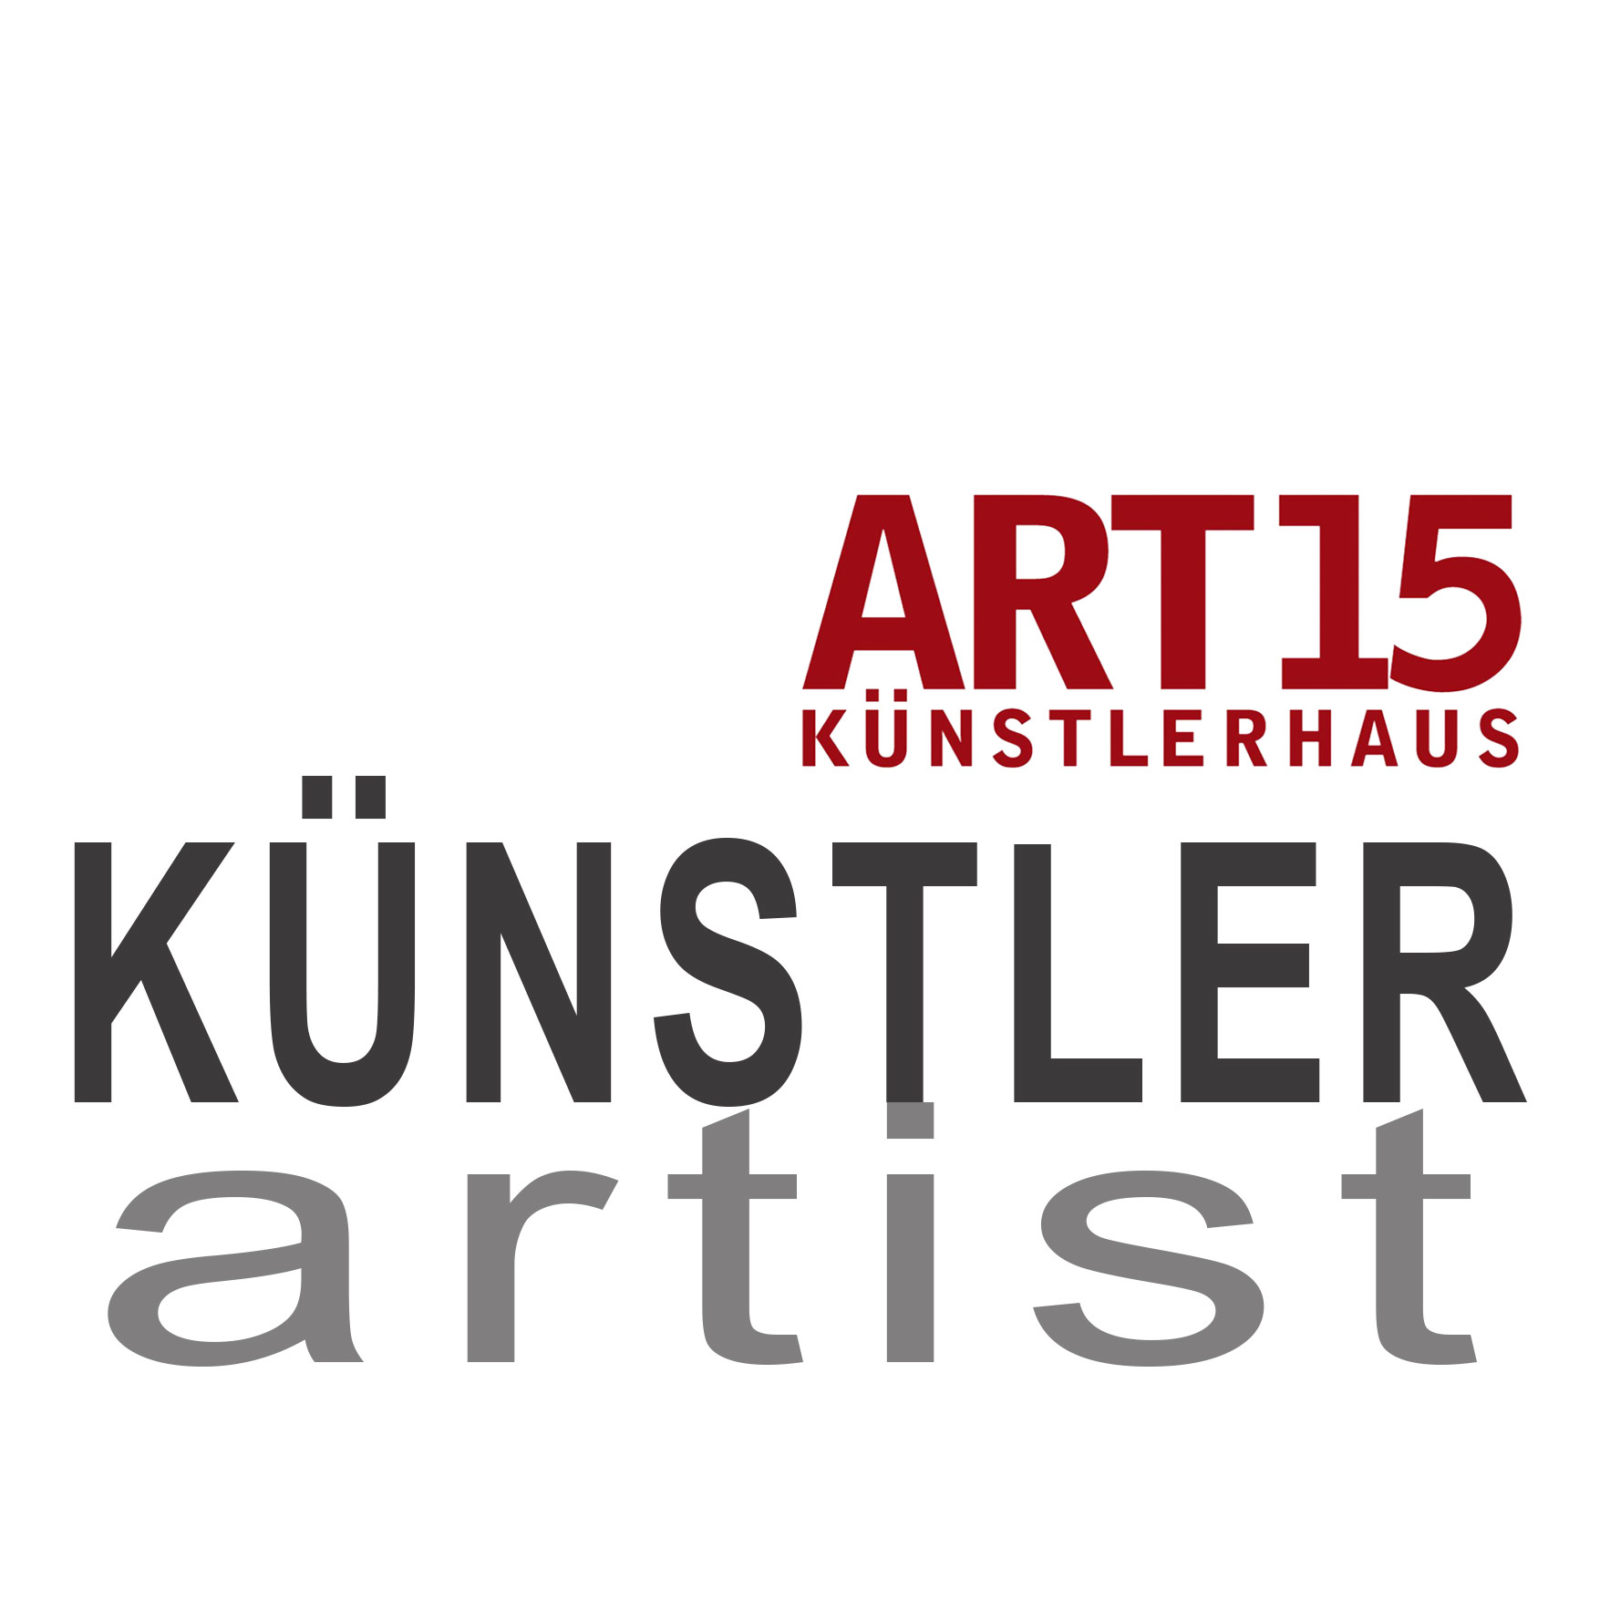 ROSMARIE HACKMANN - ART15 KÜNSTLERHAUS ART15 LOGO WORDS 1